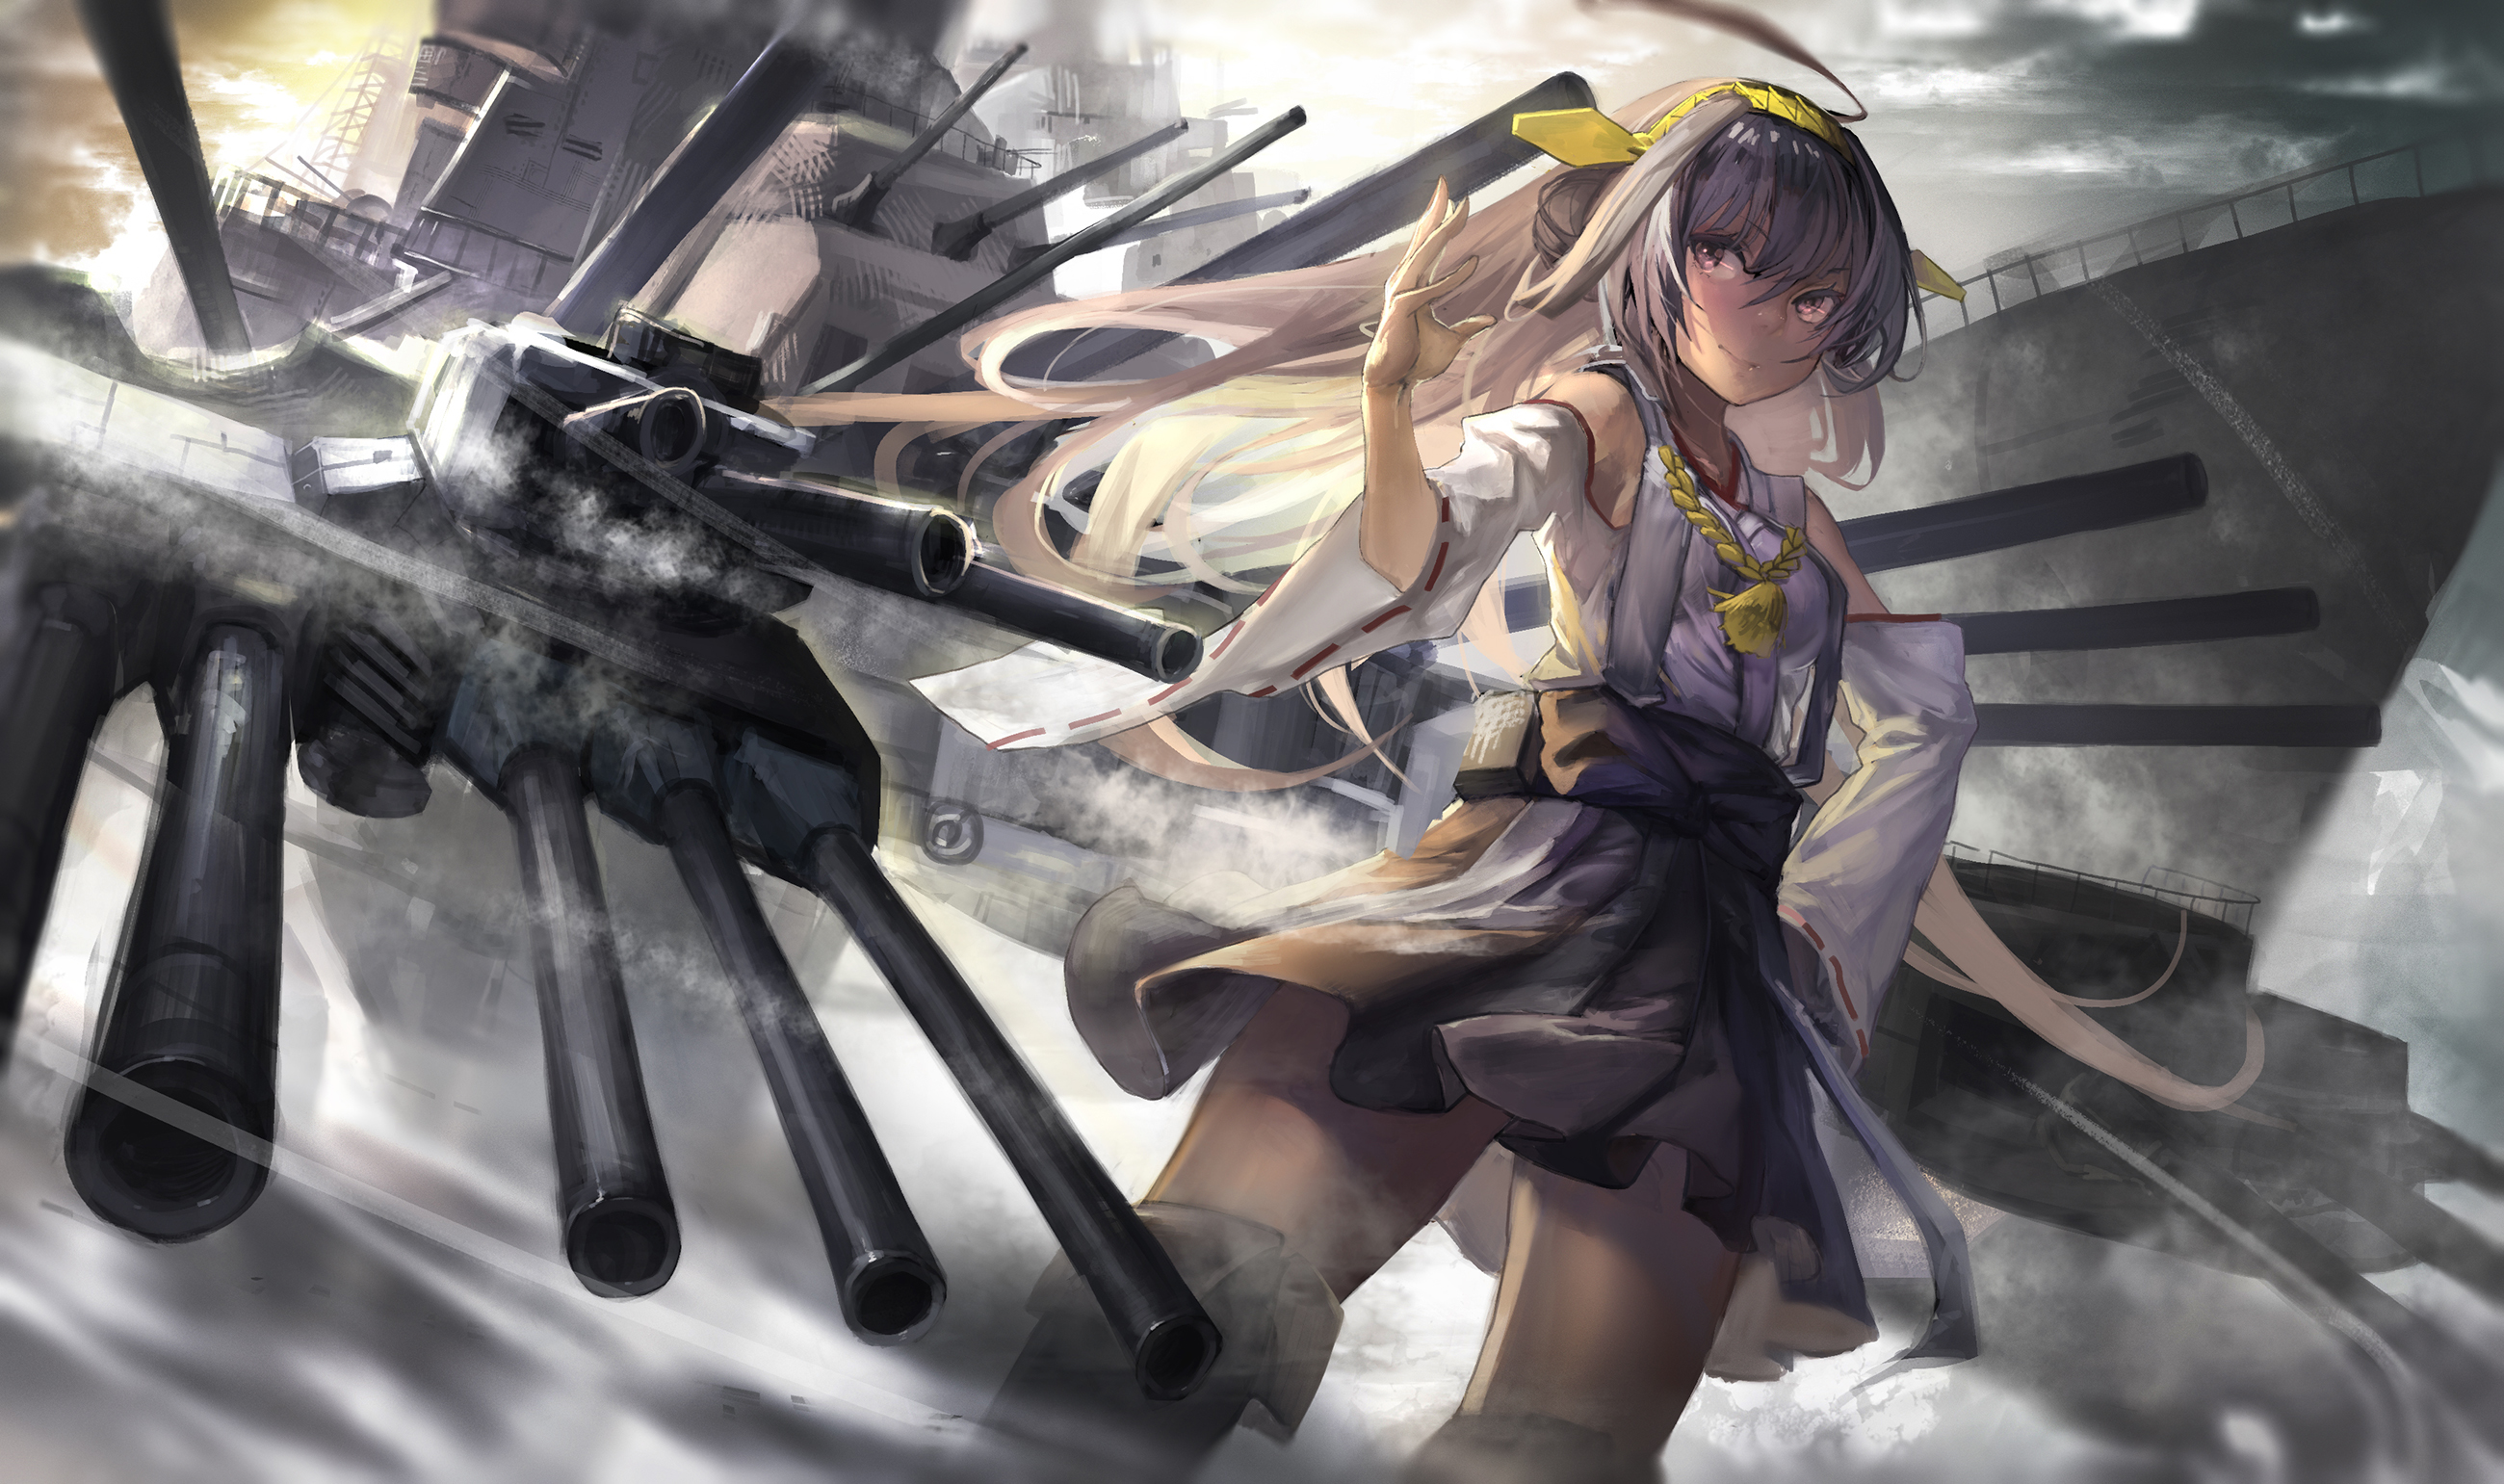 98 Haruna Kancolle HD Wallpapers Background Images   Wallpaper 2600x1541